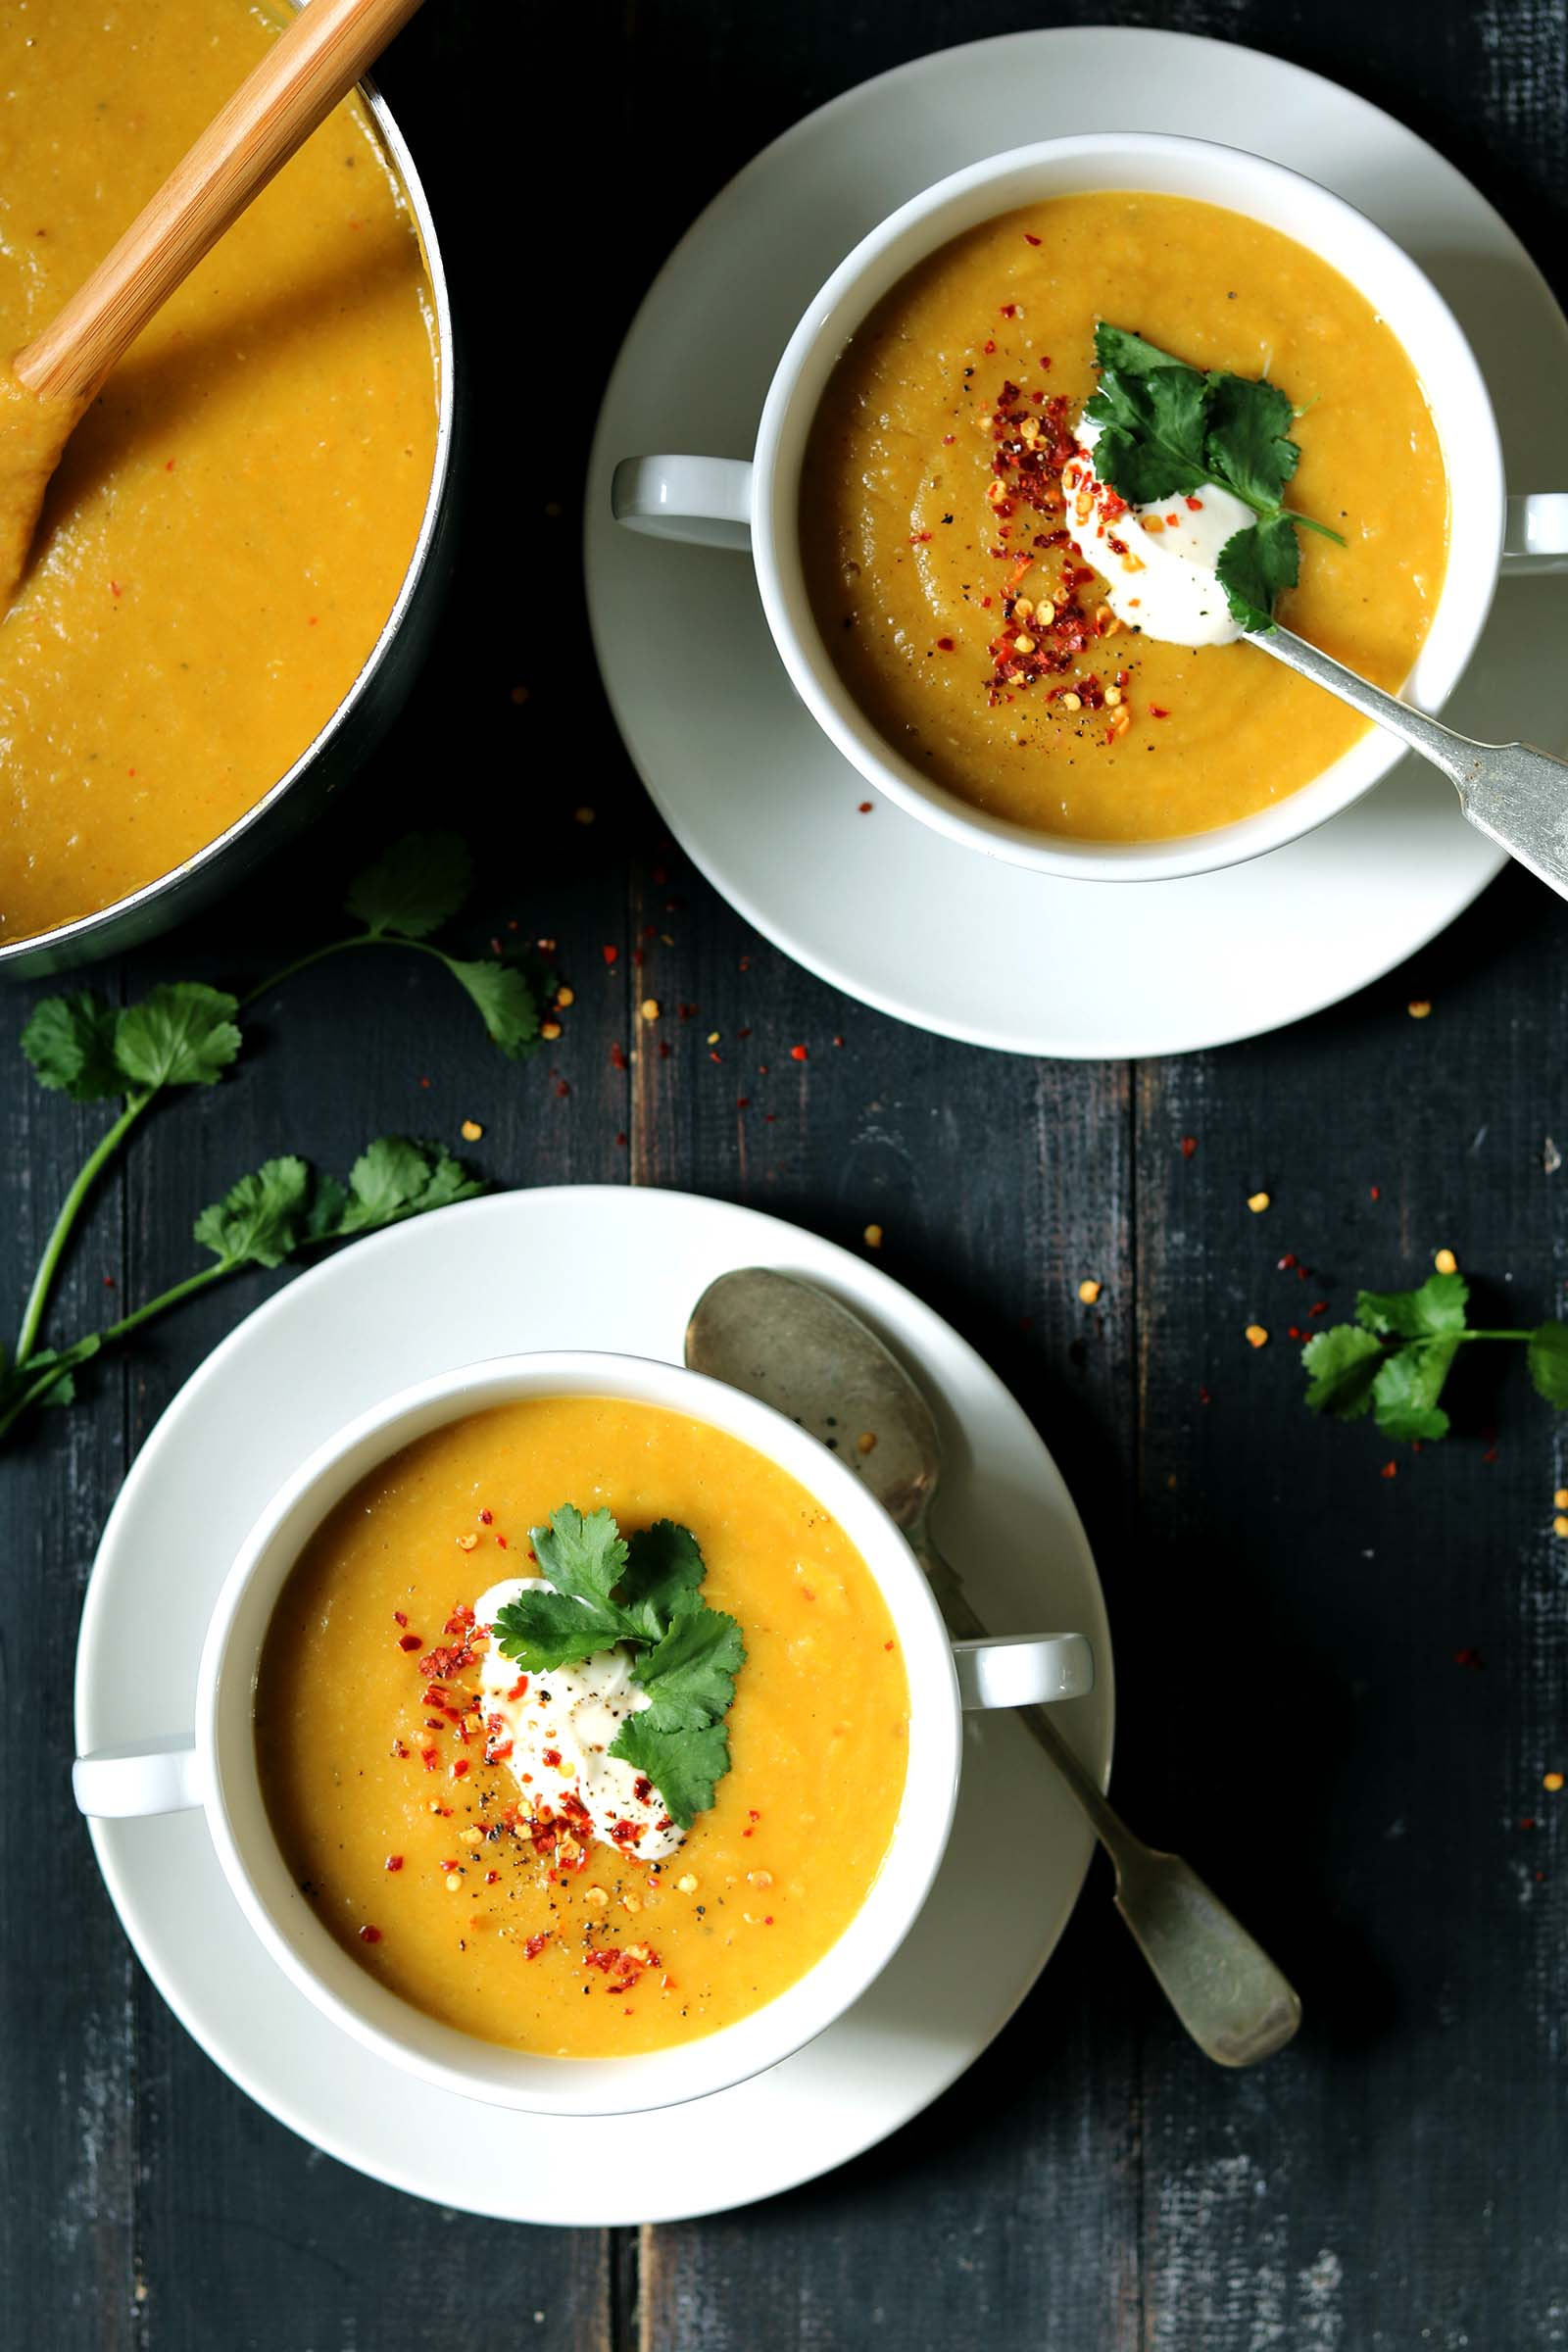 Spicy Vegetable Soup with Red Lentils